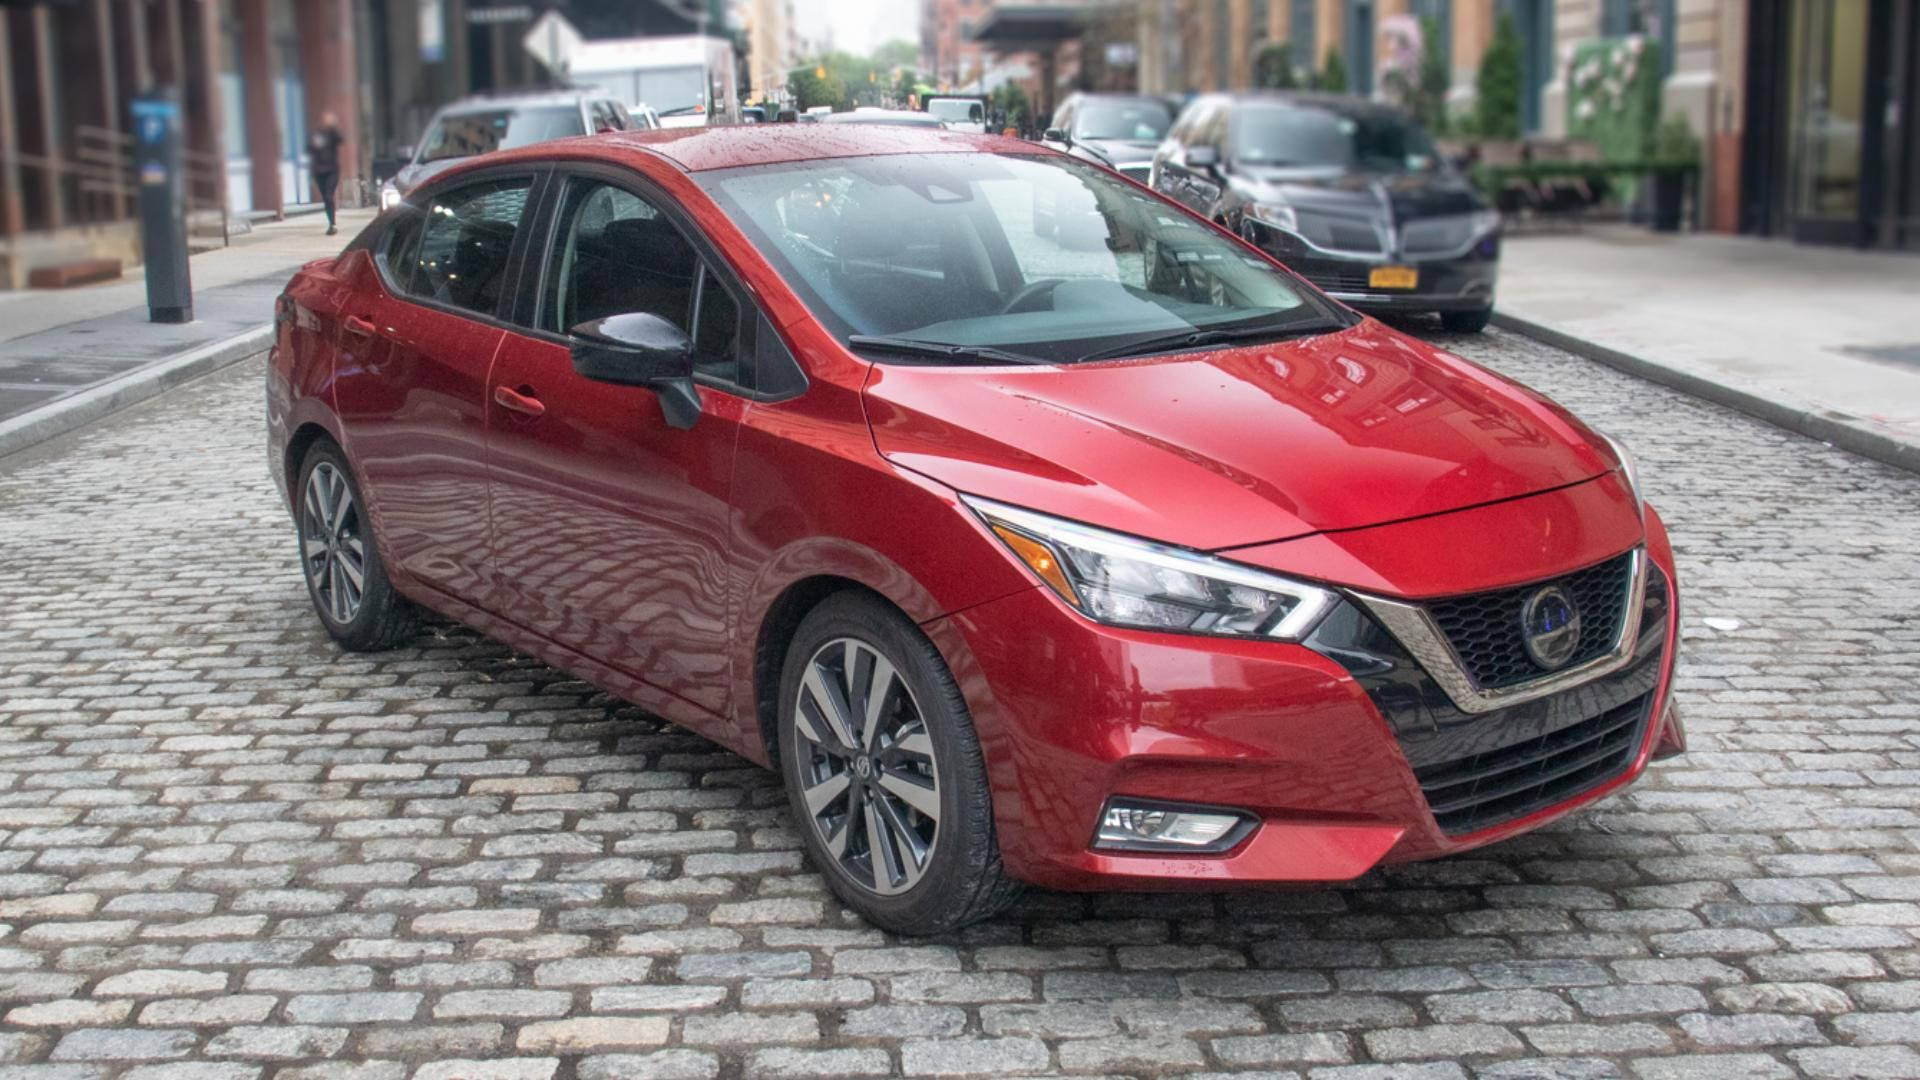 2020 Nissan Versa Review Safer Smoother Still Affordable Small Sedan With Images Small Sedans Nissan Versa Sedan